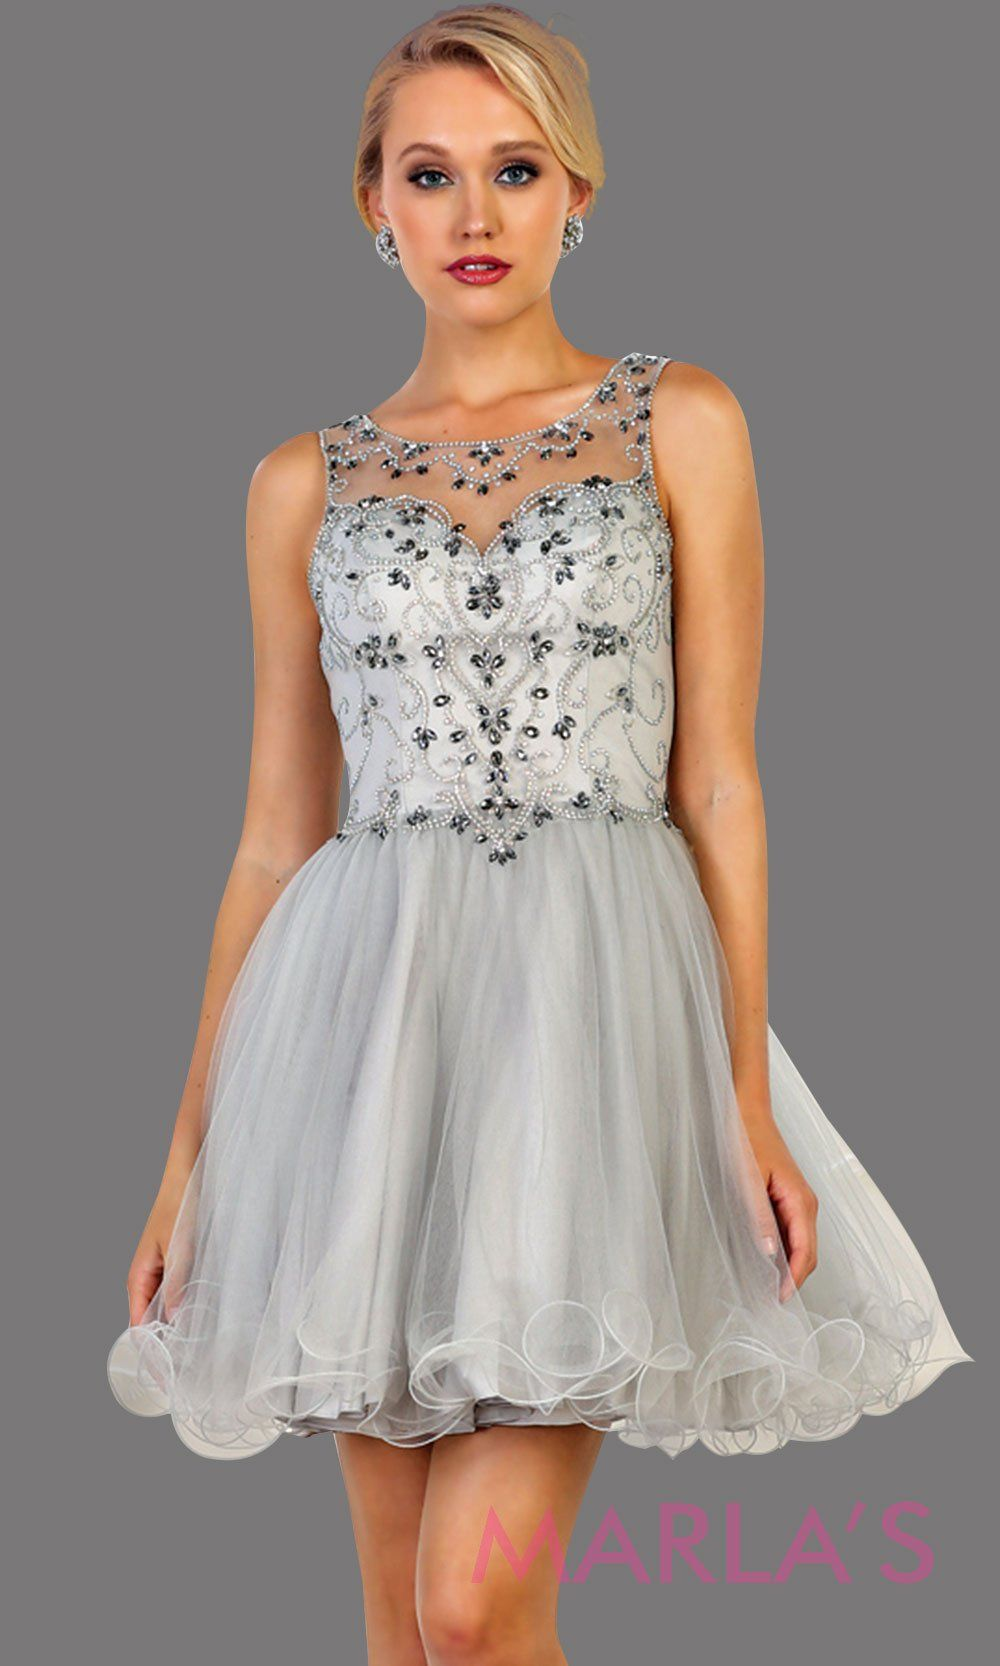 Short high neck light silver puffy grade 8 grad dress or homecoming. Perfect for light gray graduation, homecoming, debut, Quinceanera Damas, Sweet 16, Sweet 15. Available in plus sizes.